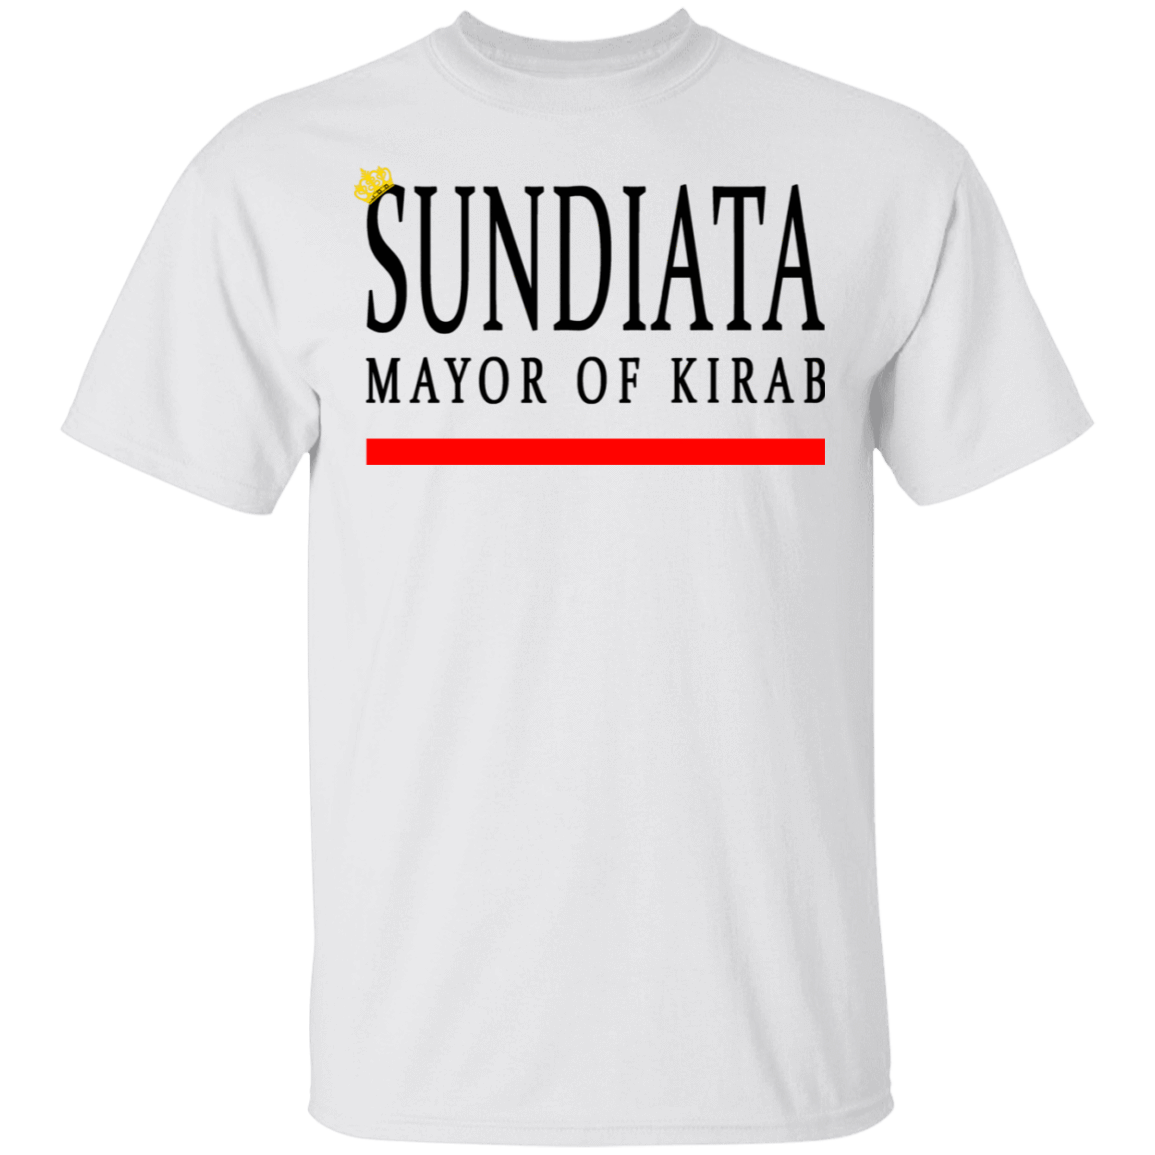 Sundiata Mayor Of Kirab T-Shirts, Hoodies, Tank 22-114-79999094-253 - Tee Ript